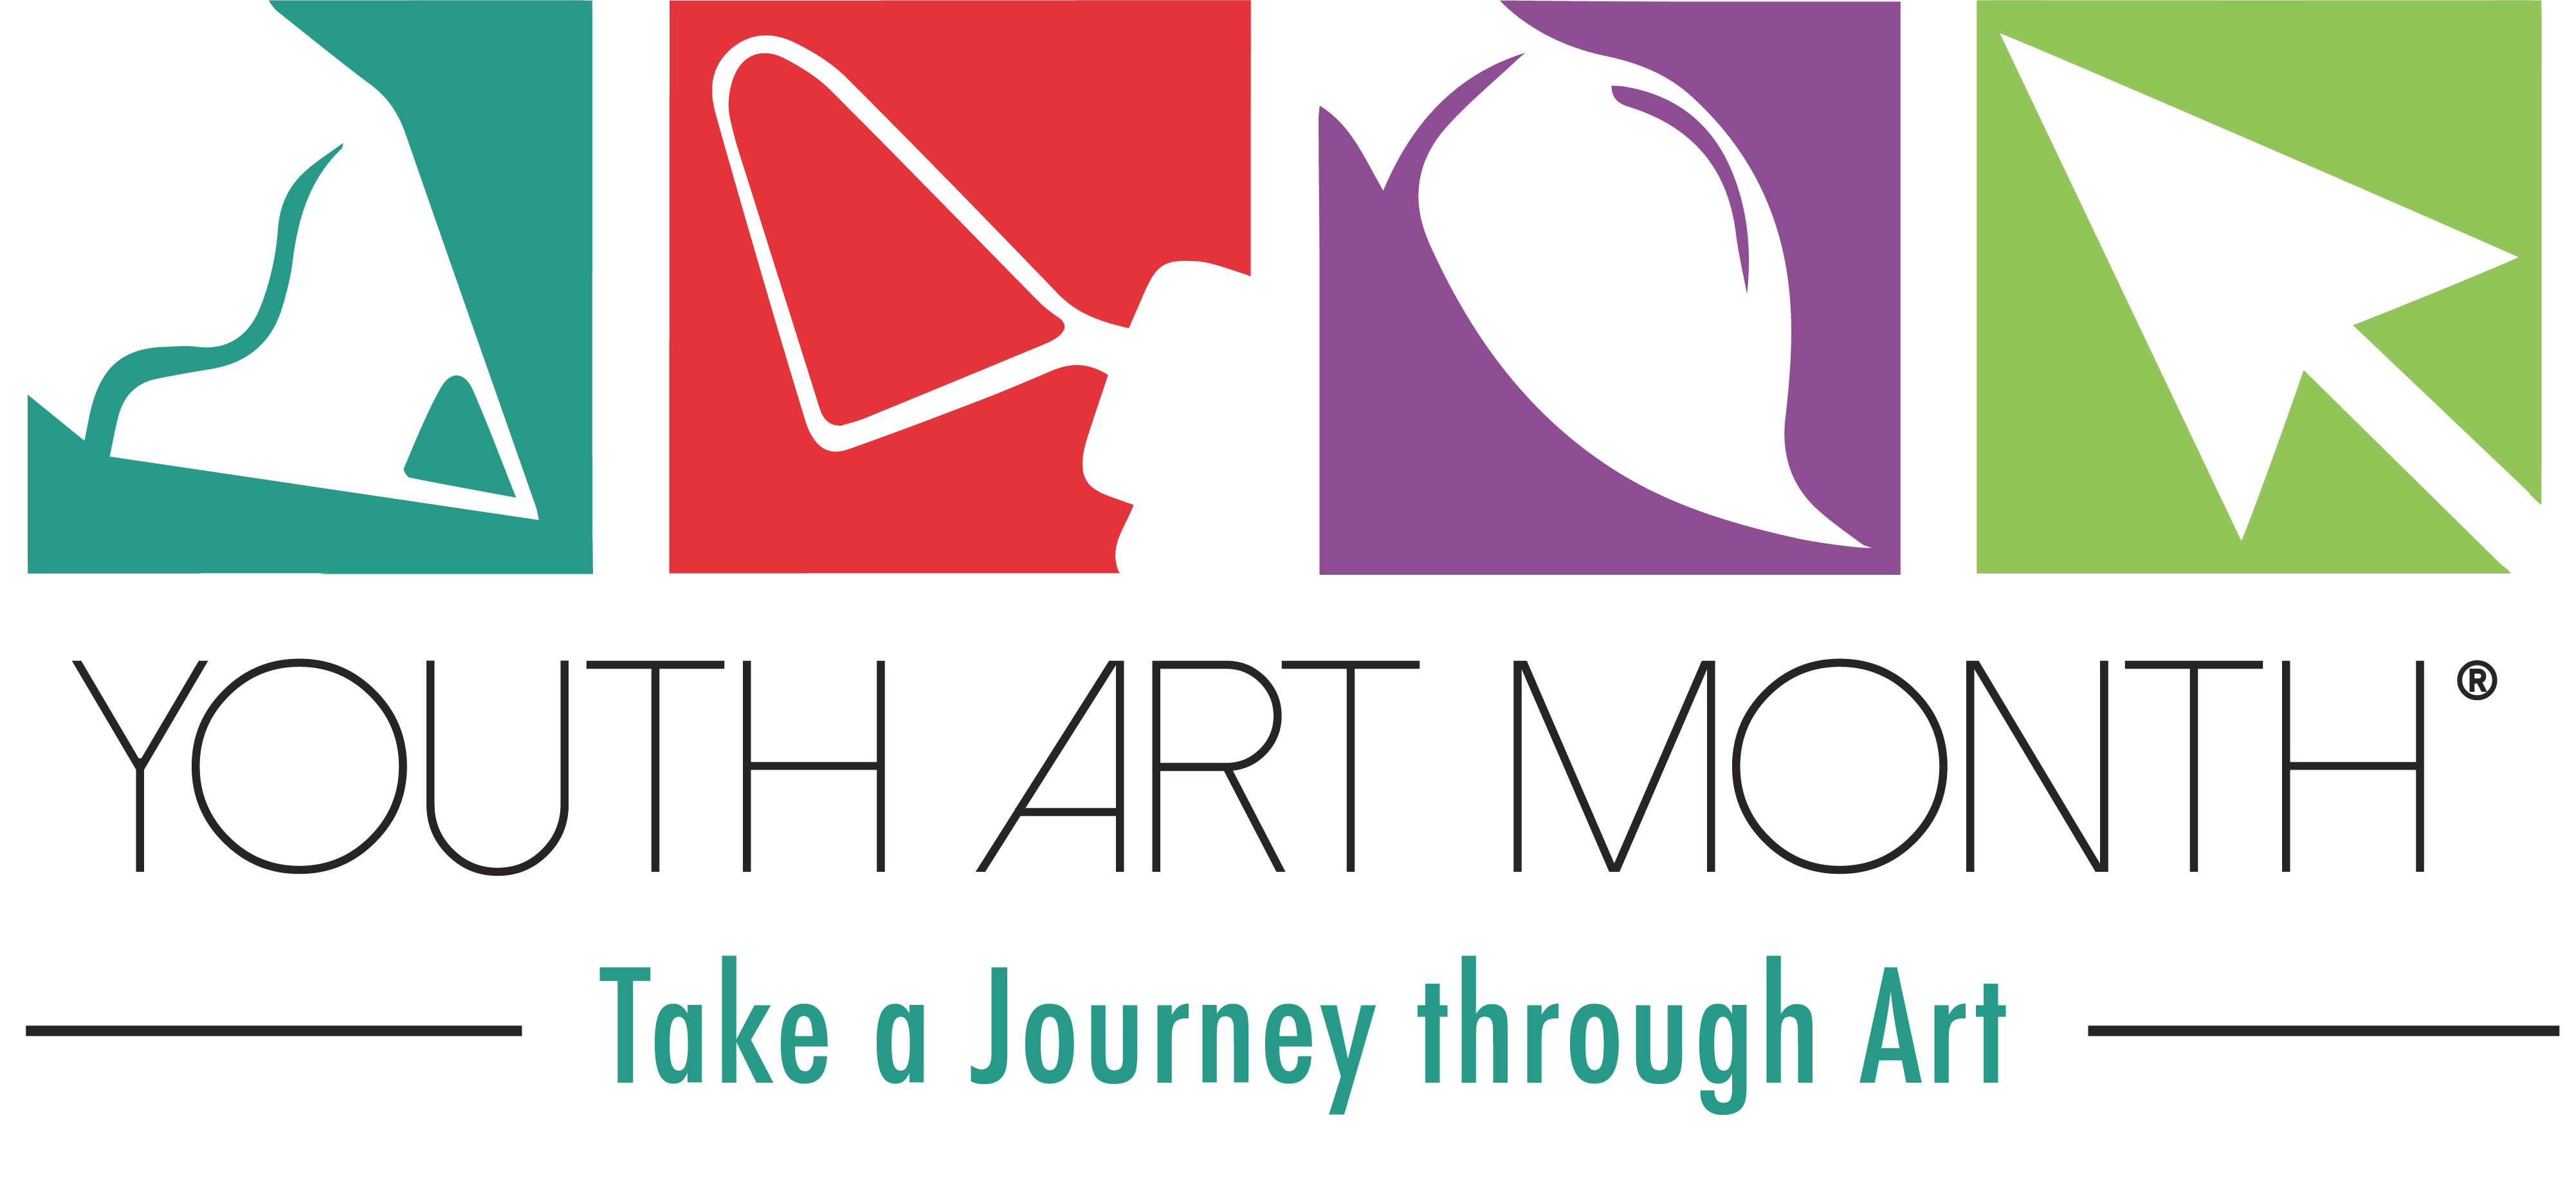 Youth Art Month Logo